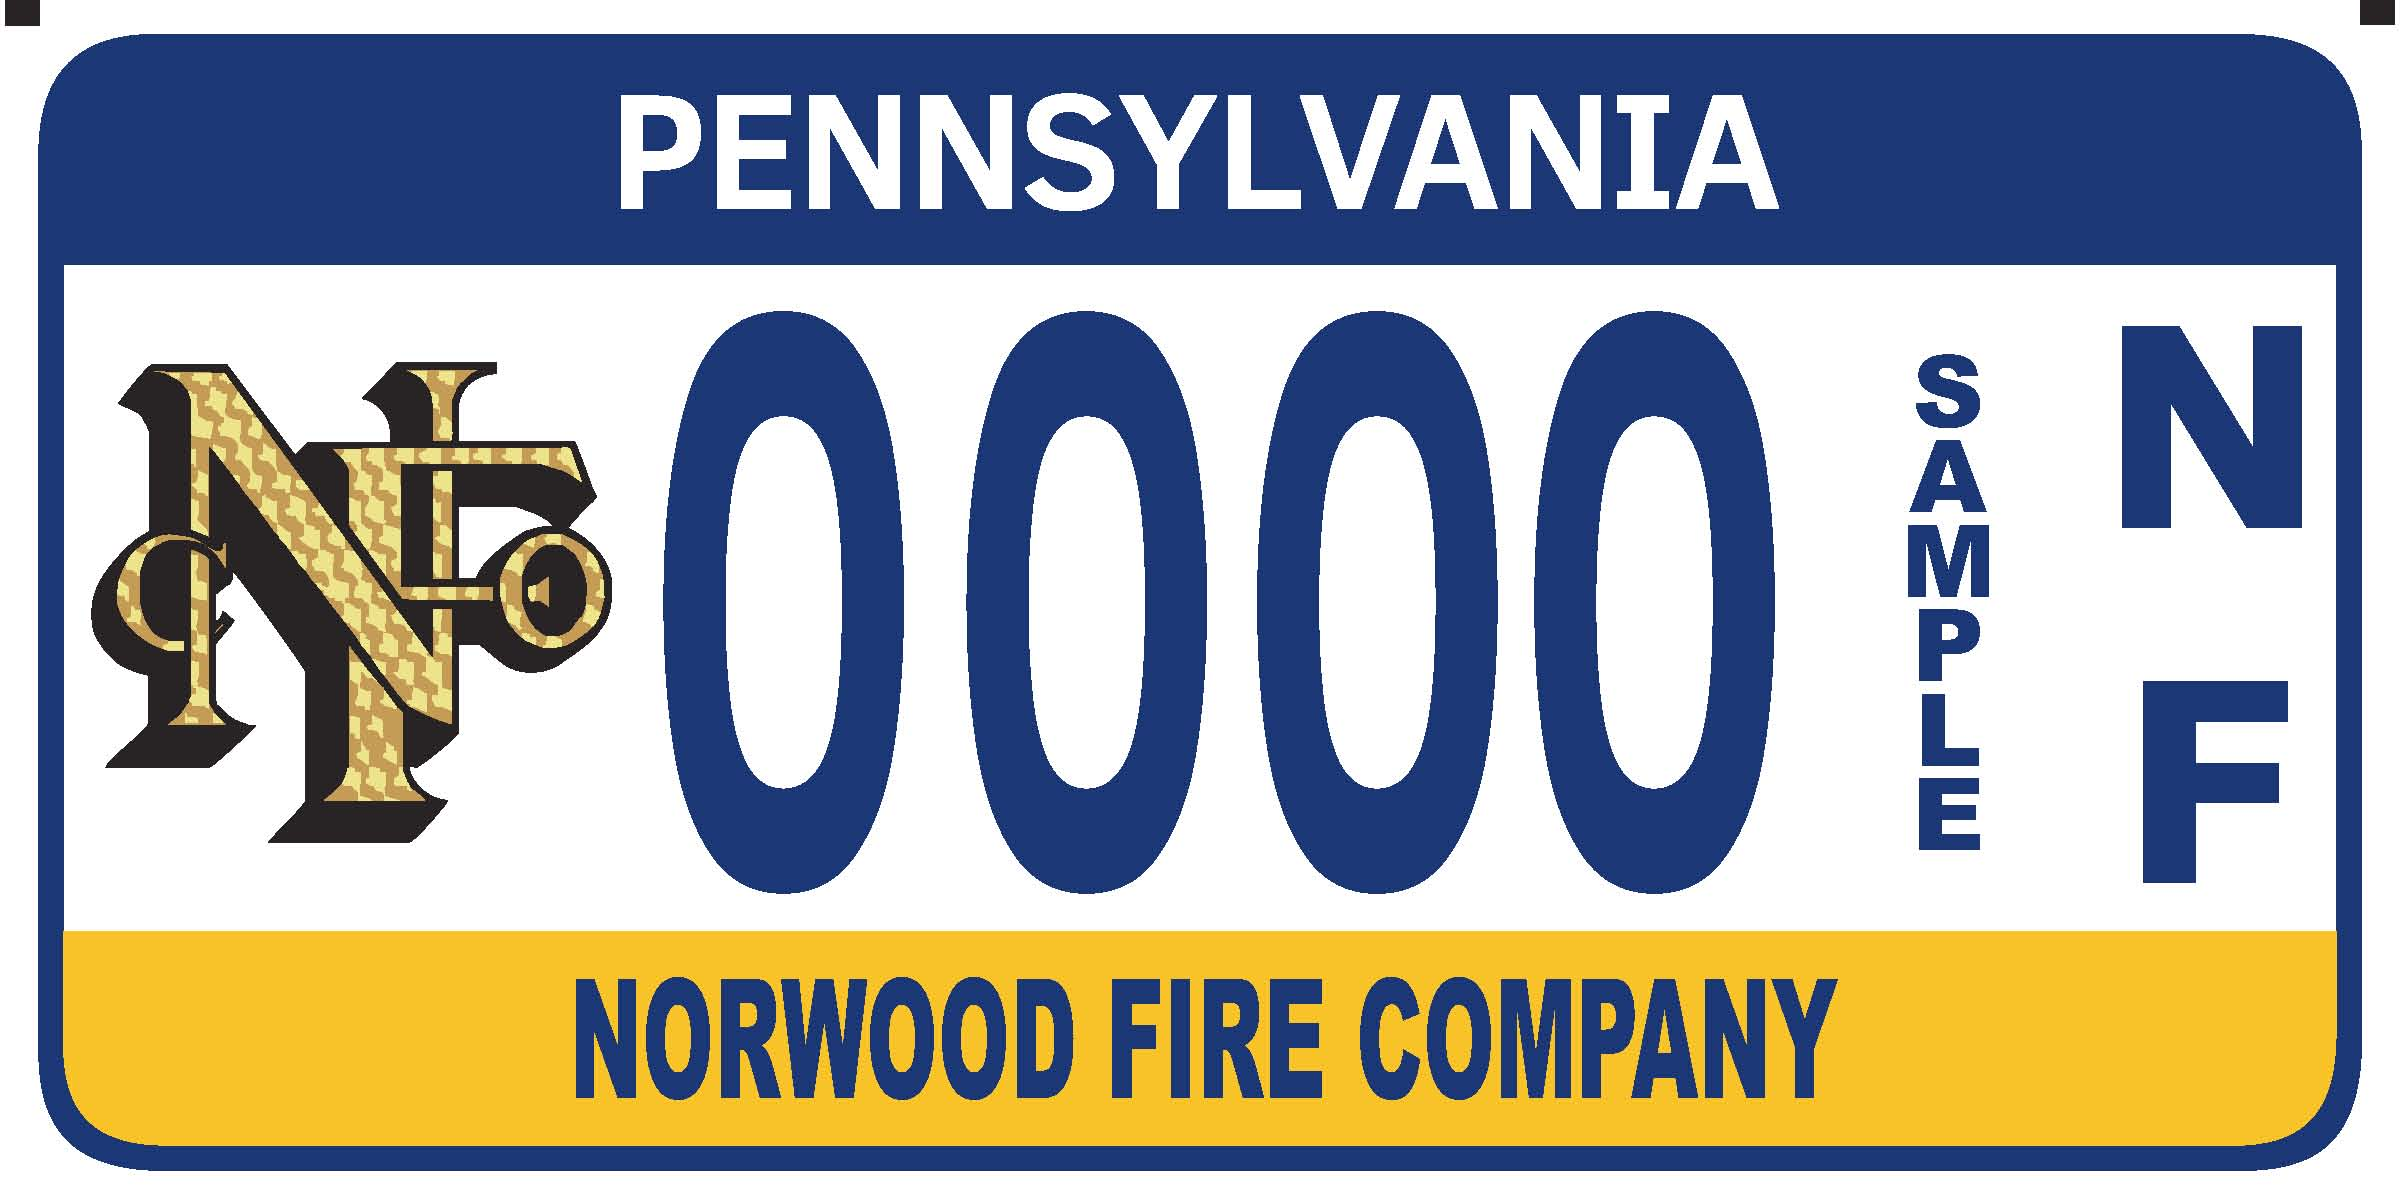 Norwood Fire Company